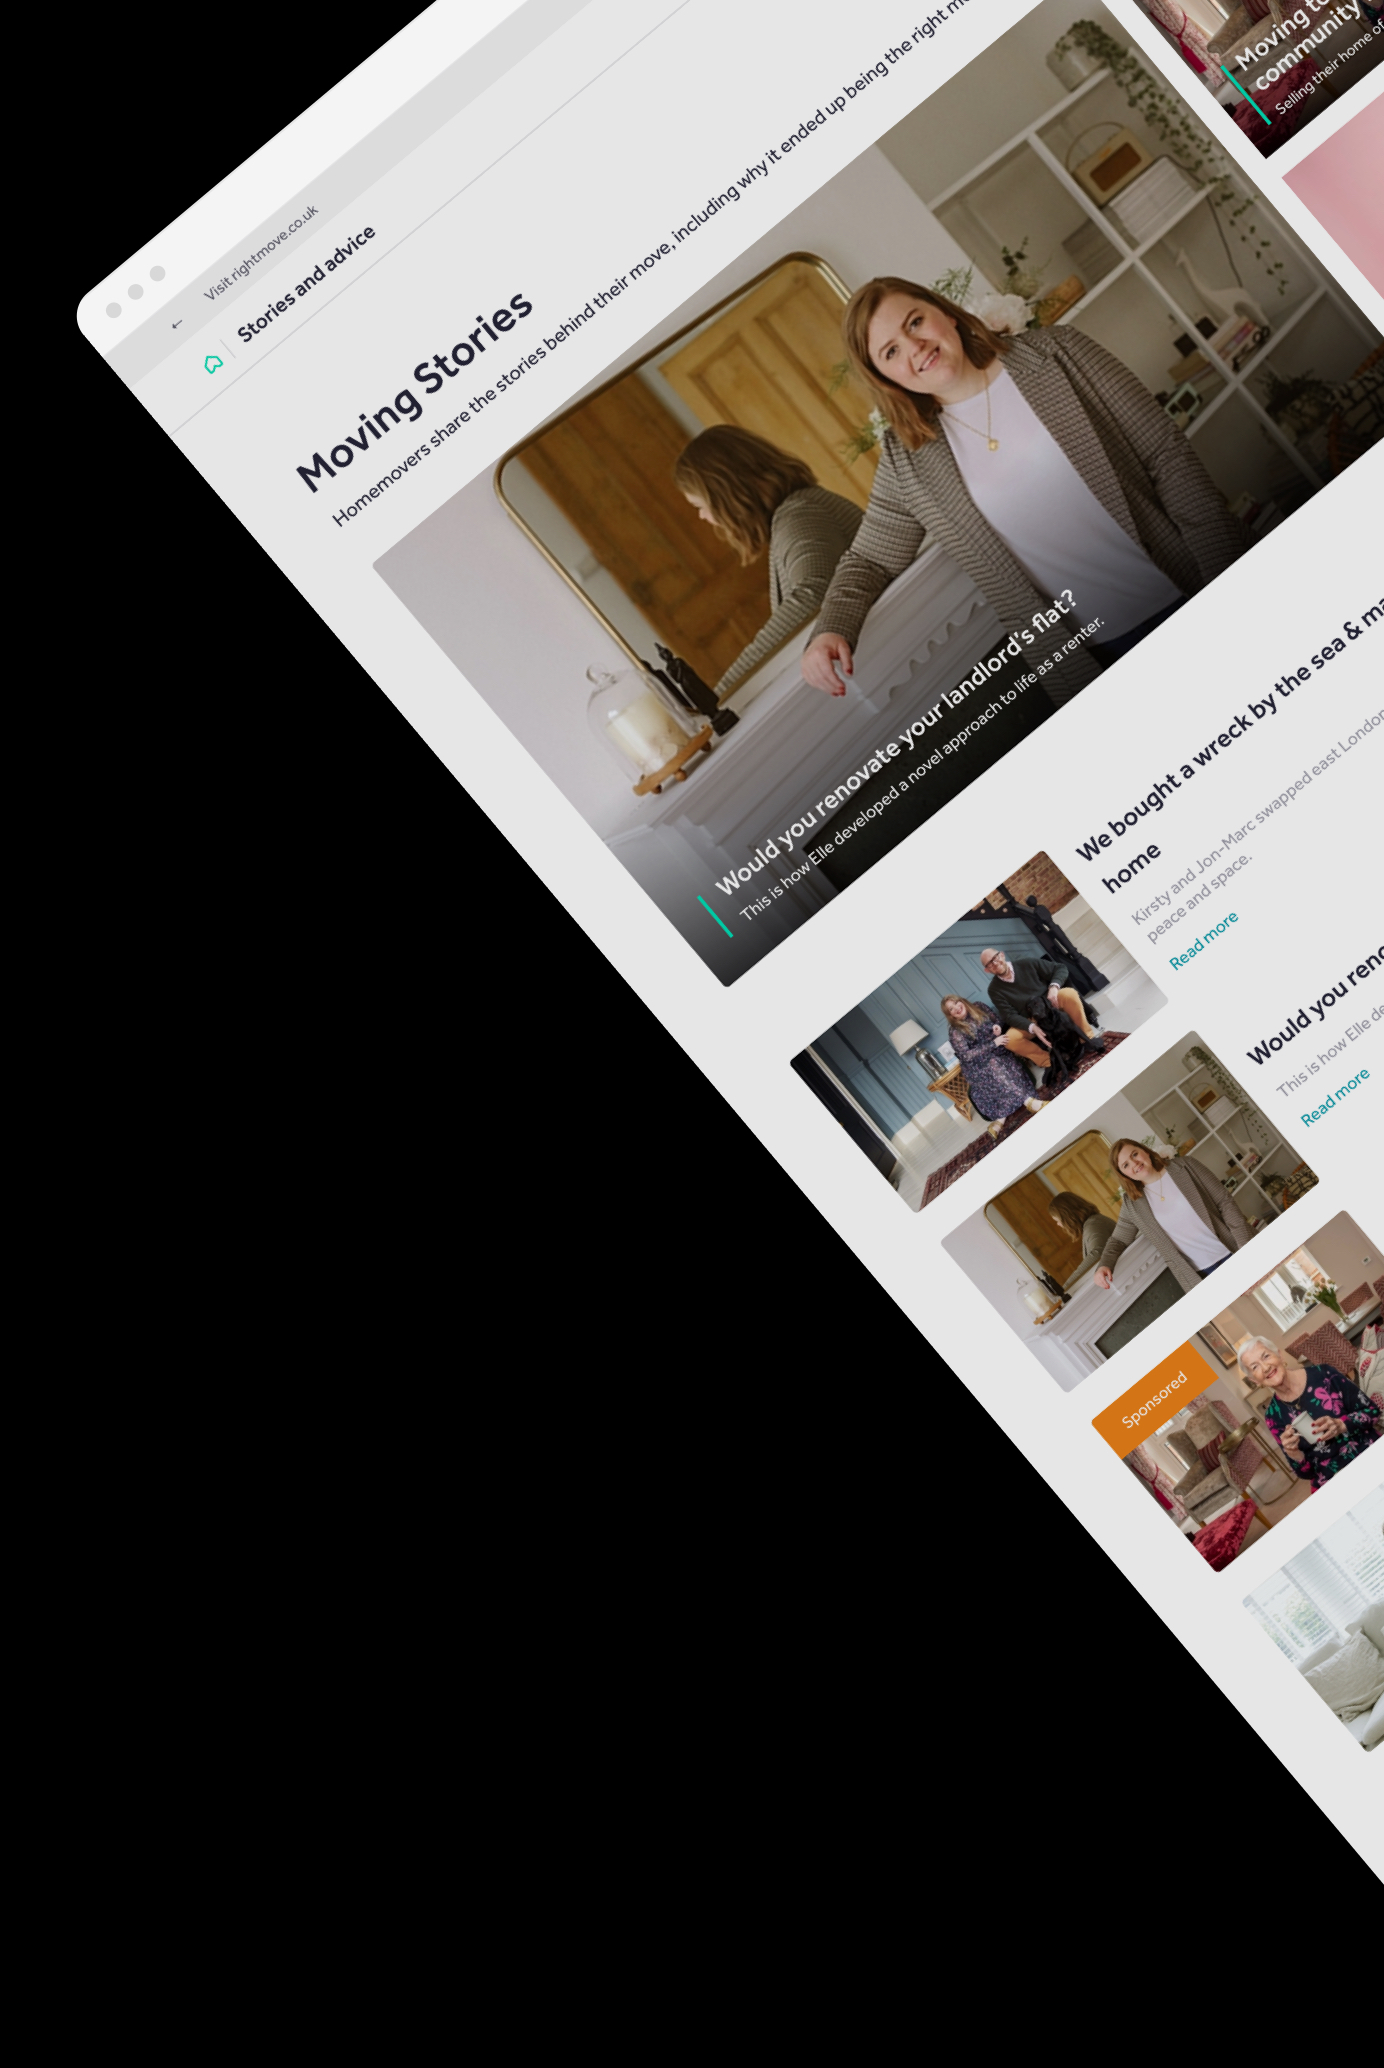 Bringing Rightmove's Moving Stories to life in WordPress